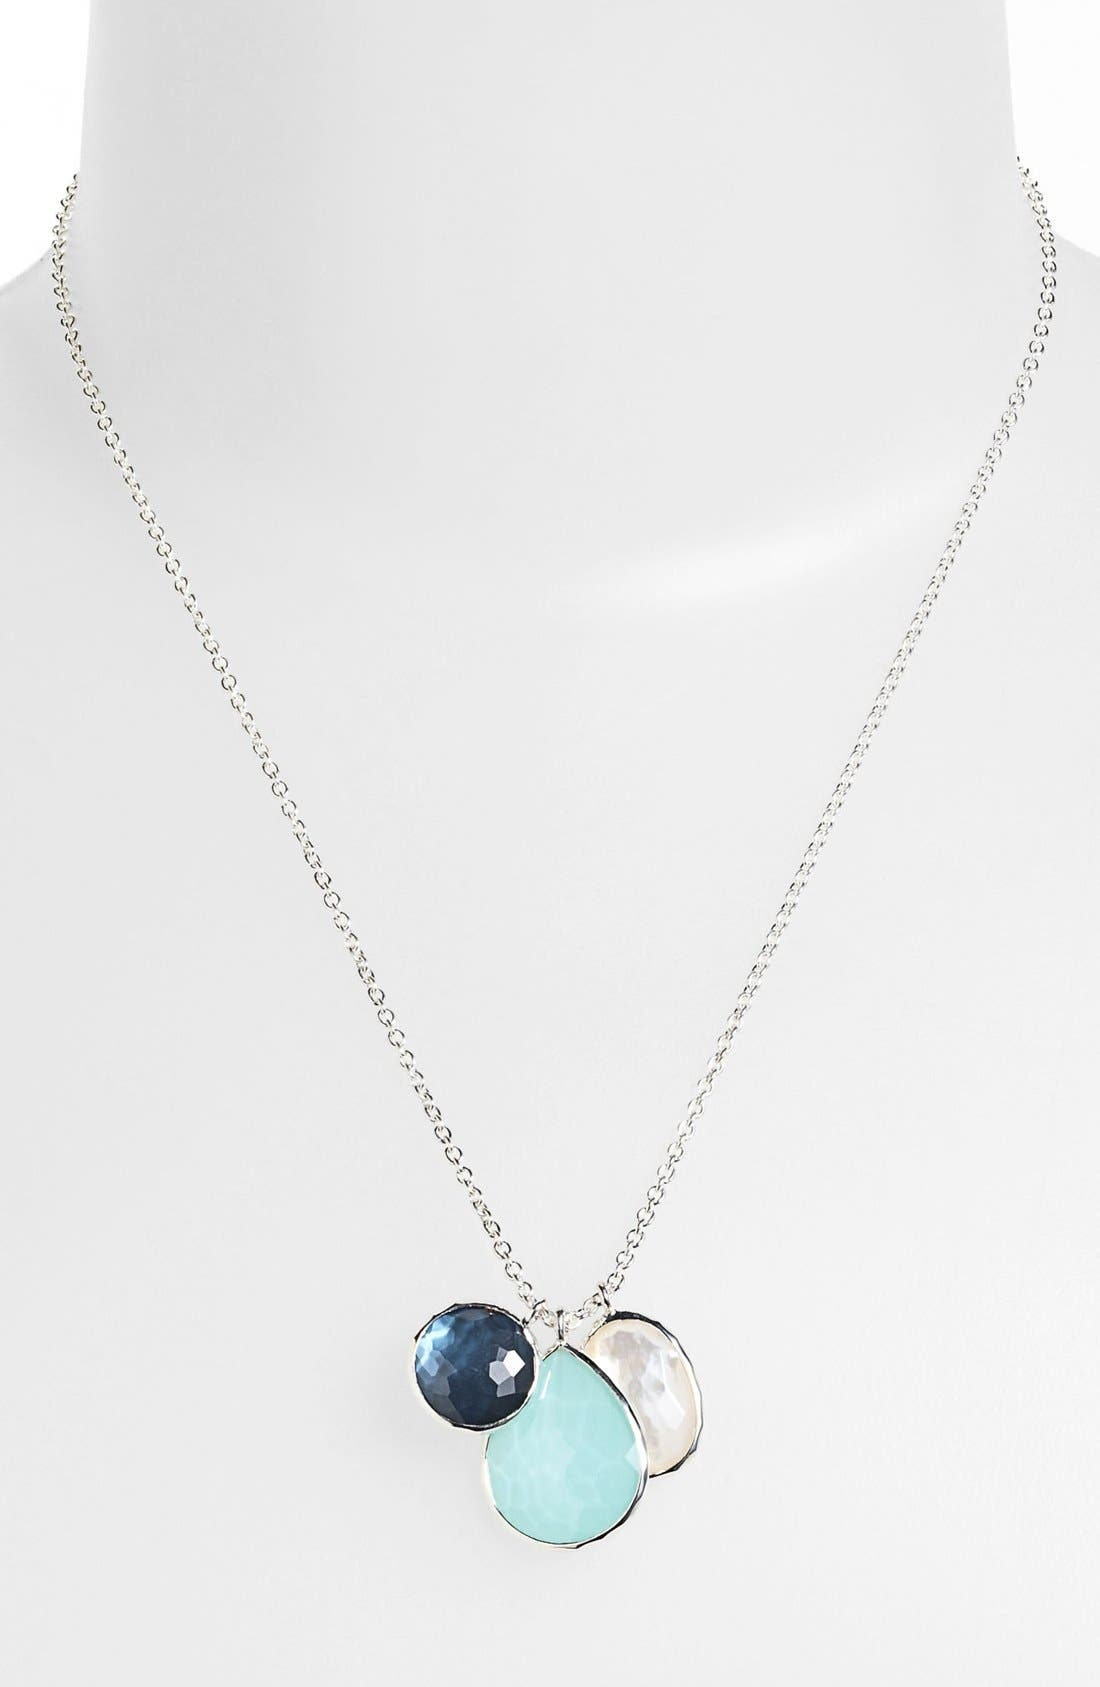 Main Image - Ippolita 'Wonderland' Triple Charm Necklace